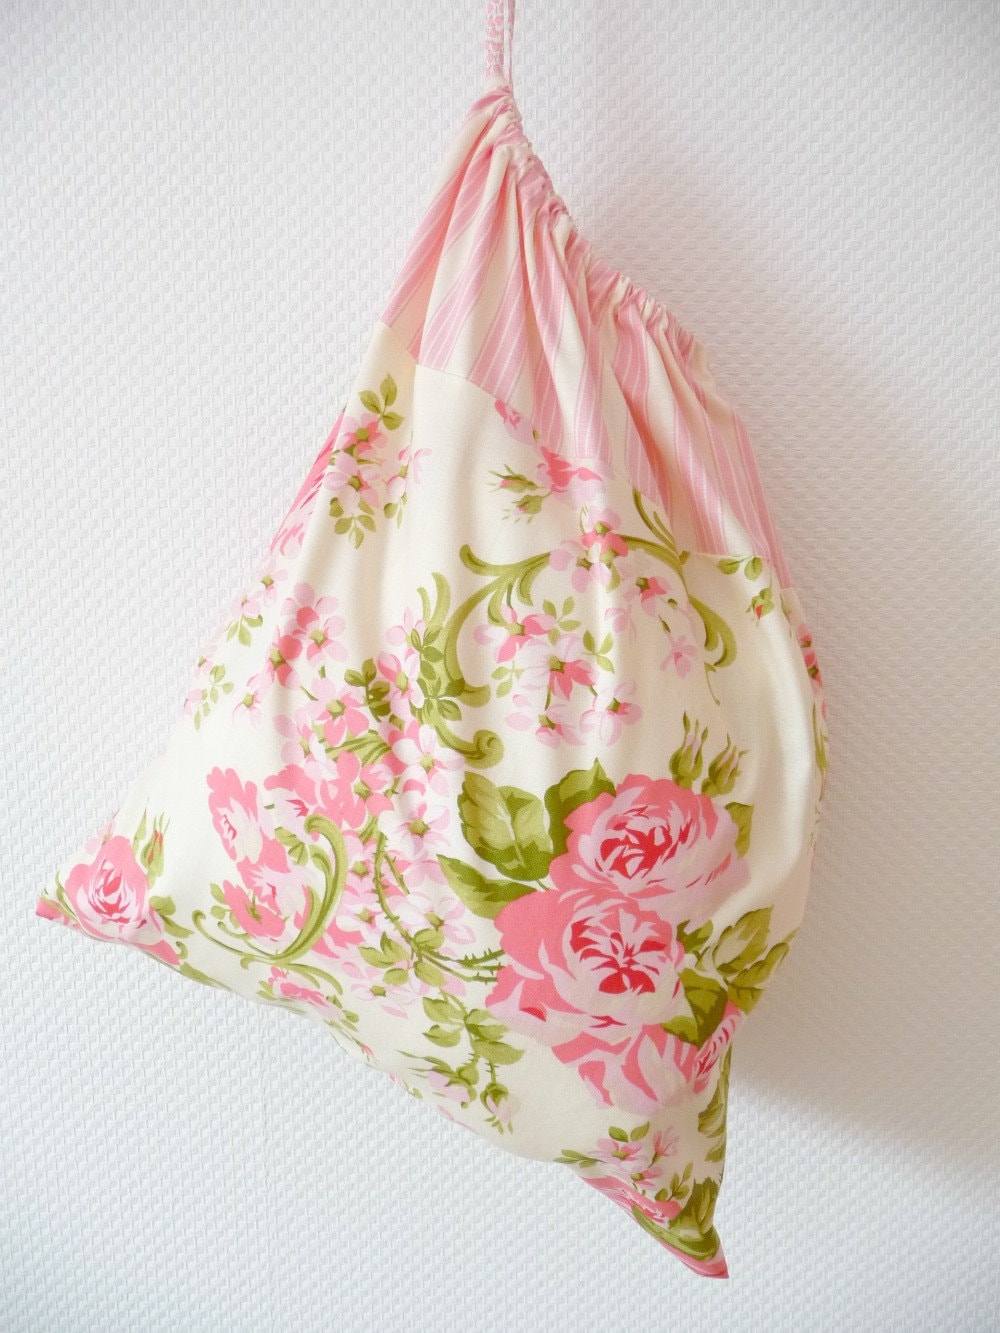 Shabby Chic Laundry Bag. Lingerie Bag. Pink Cabbage Roses Ticking Stripe. Cath Kidstonesque. europeanstreetteam. Drawstring Bag. - PeriDotbyDuni